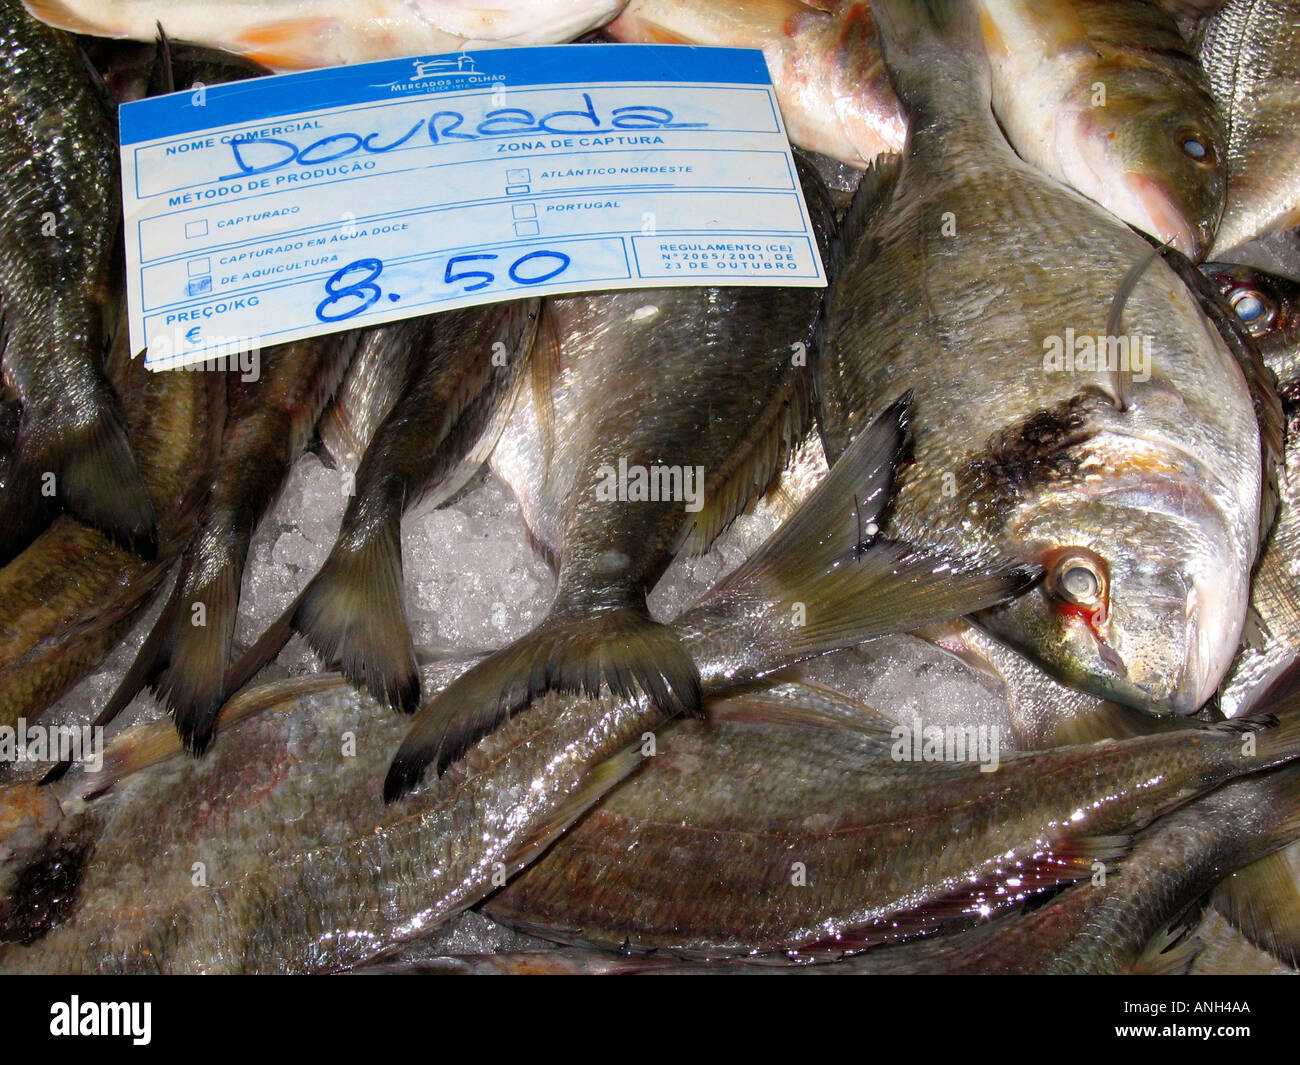 Dourada fish for sale in olhao fish market algarve for Stock fish for sale